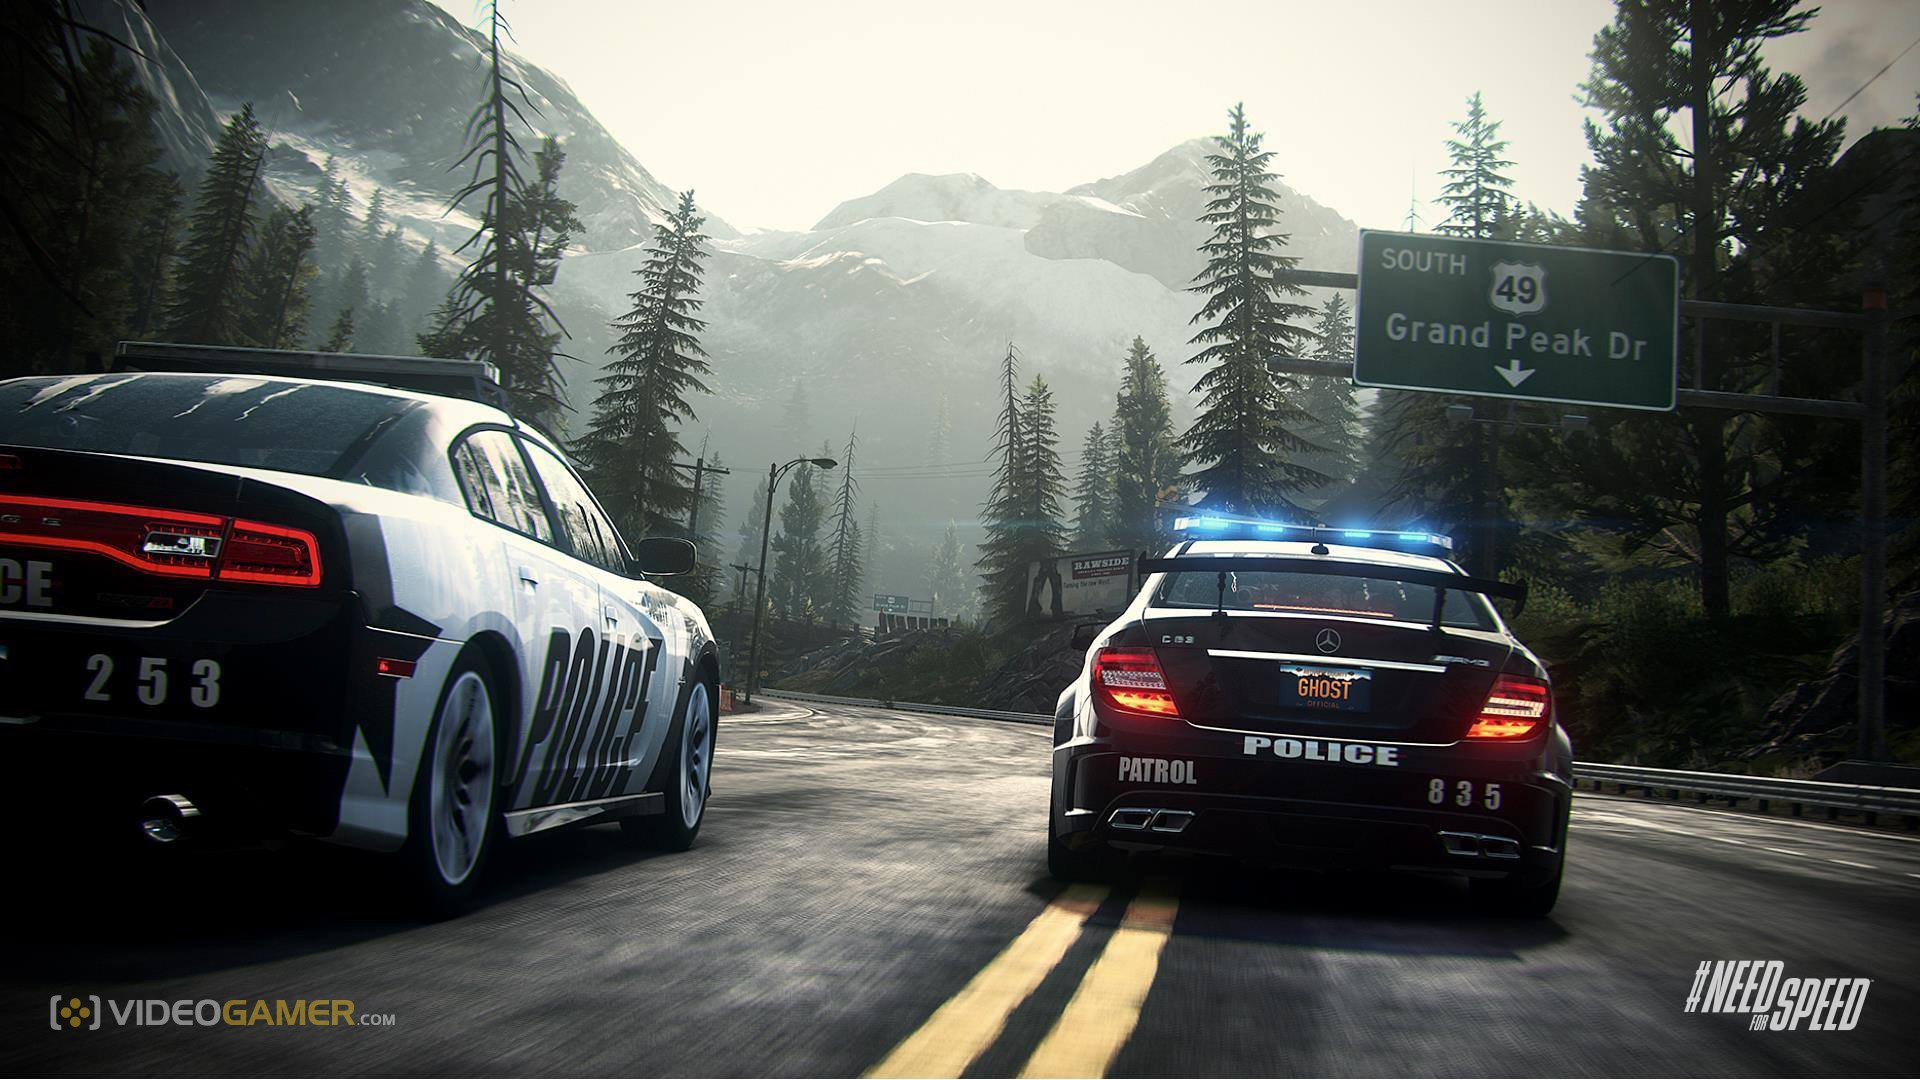 Police Car Chase Wallpaper Need For Speed Rivals Full Hd Wallpaper And Background